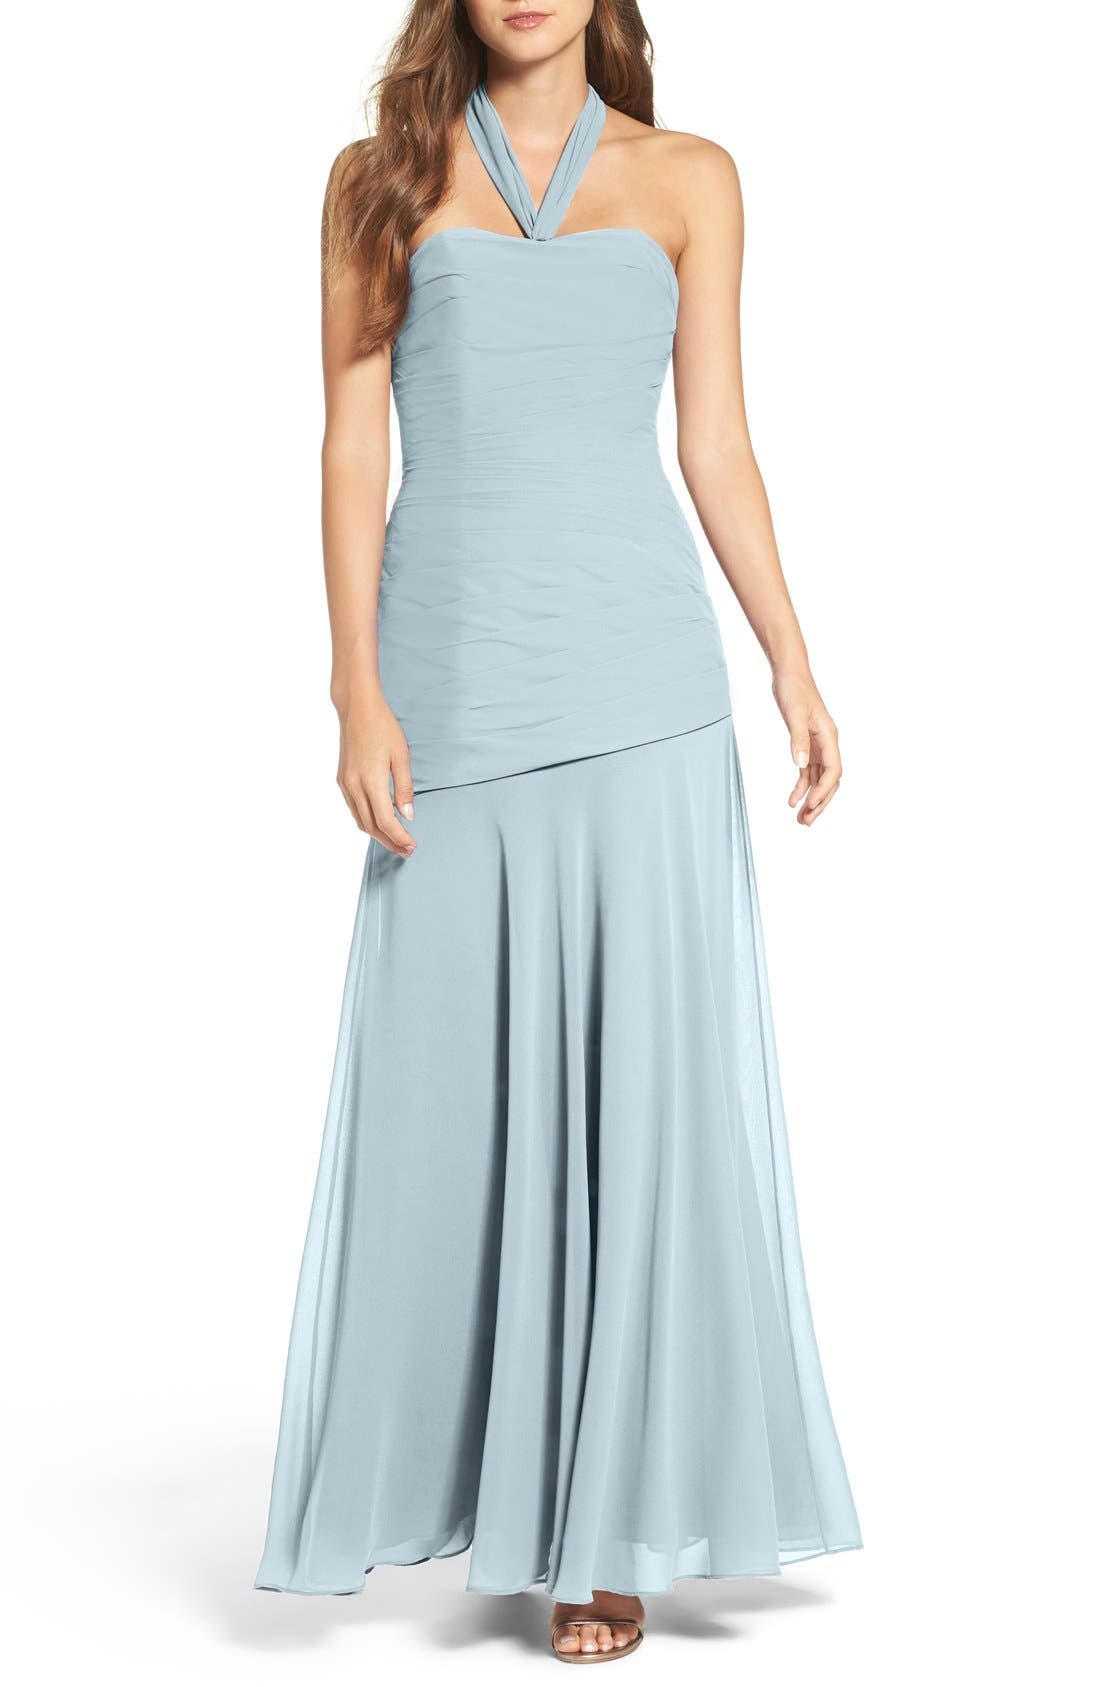 WTOO Halter Bridesmaid & Wedding Party Dresses | Nordstrom